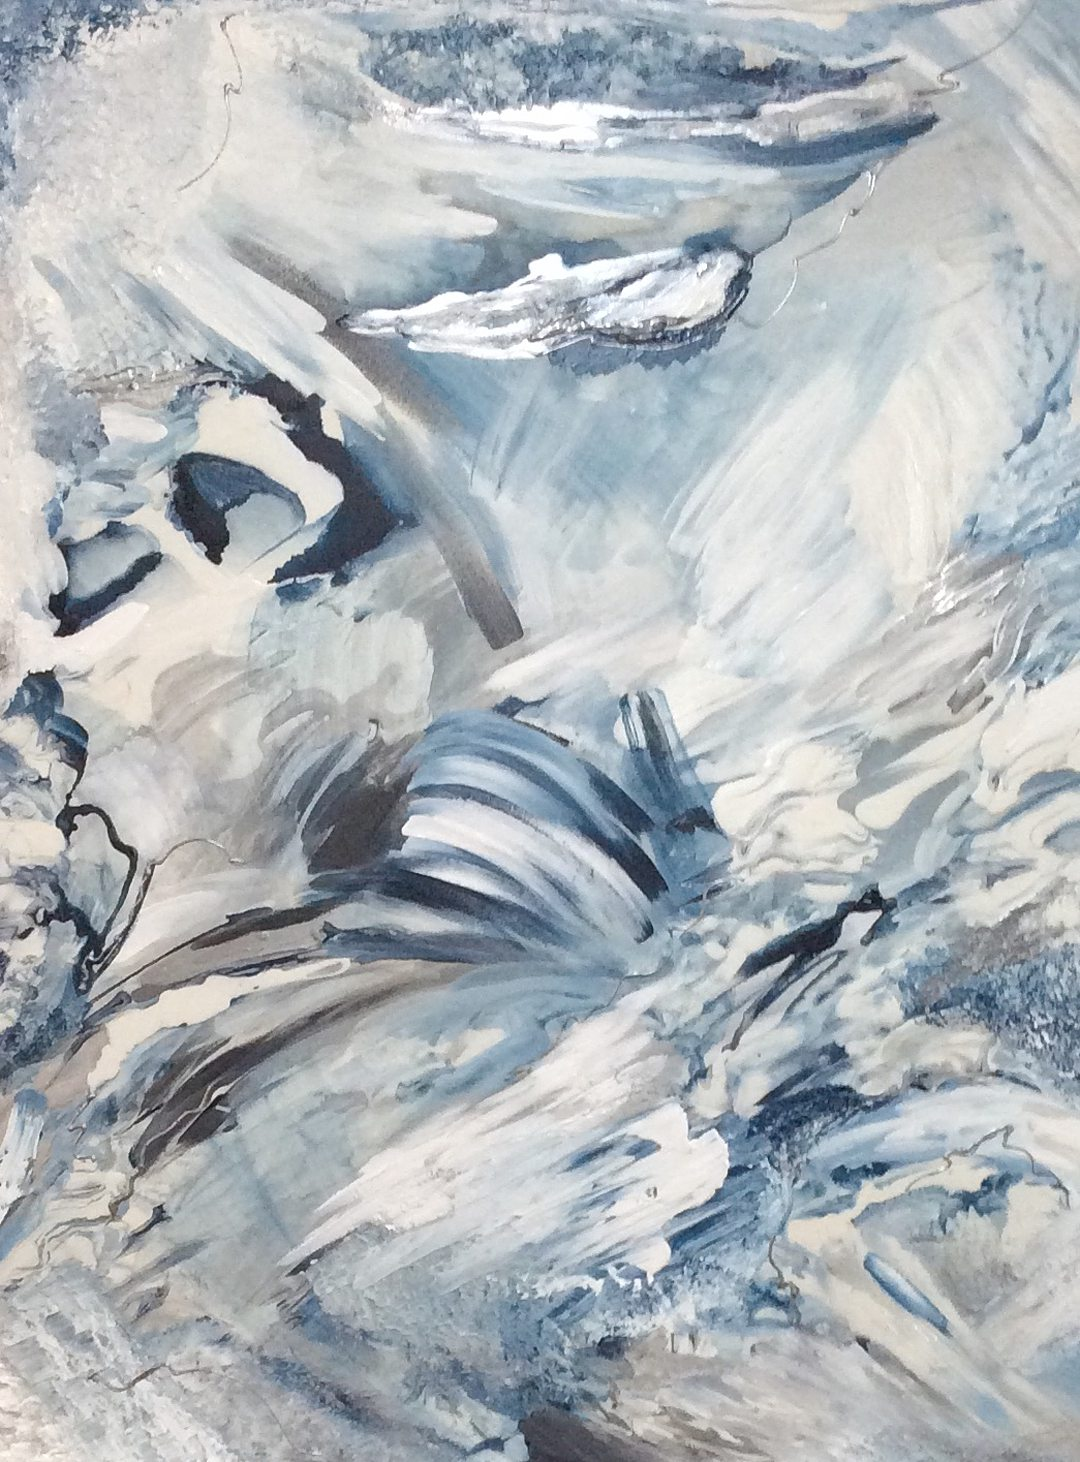 Abstract art collection by North Vancouver artist Diana Zoe Coop | Untitled | Commission